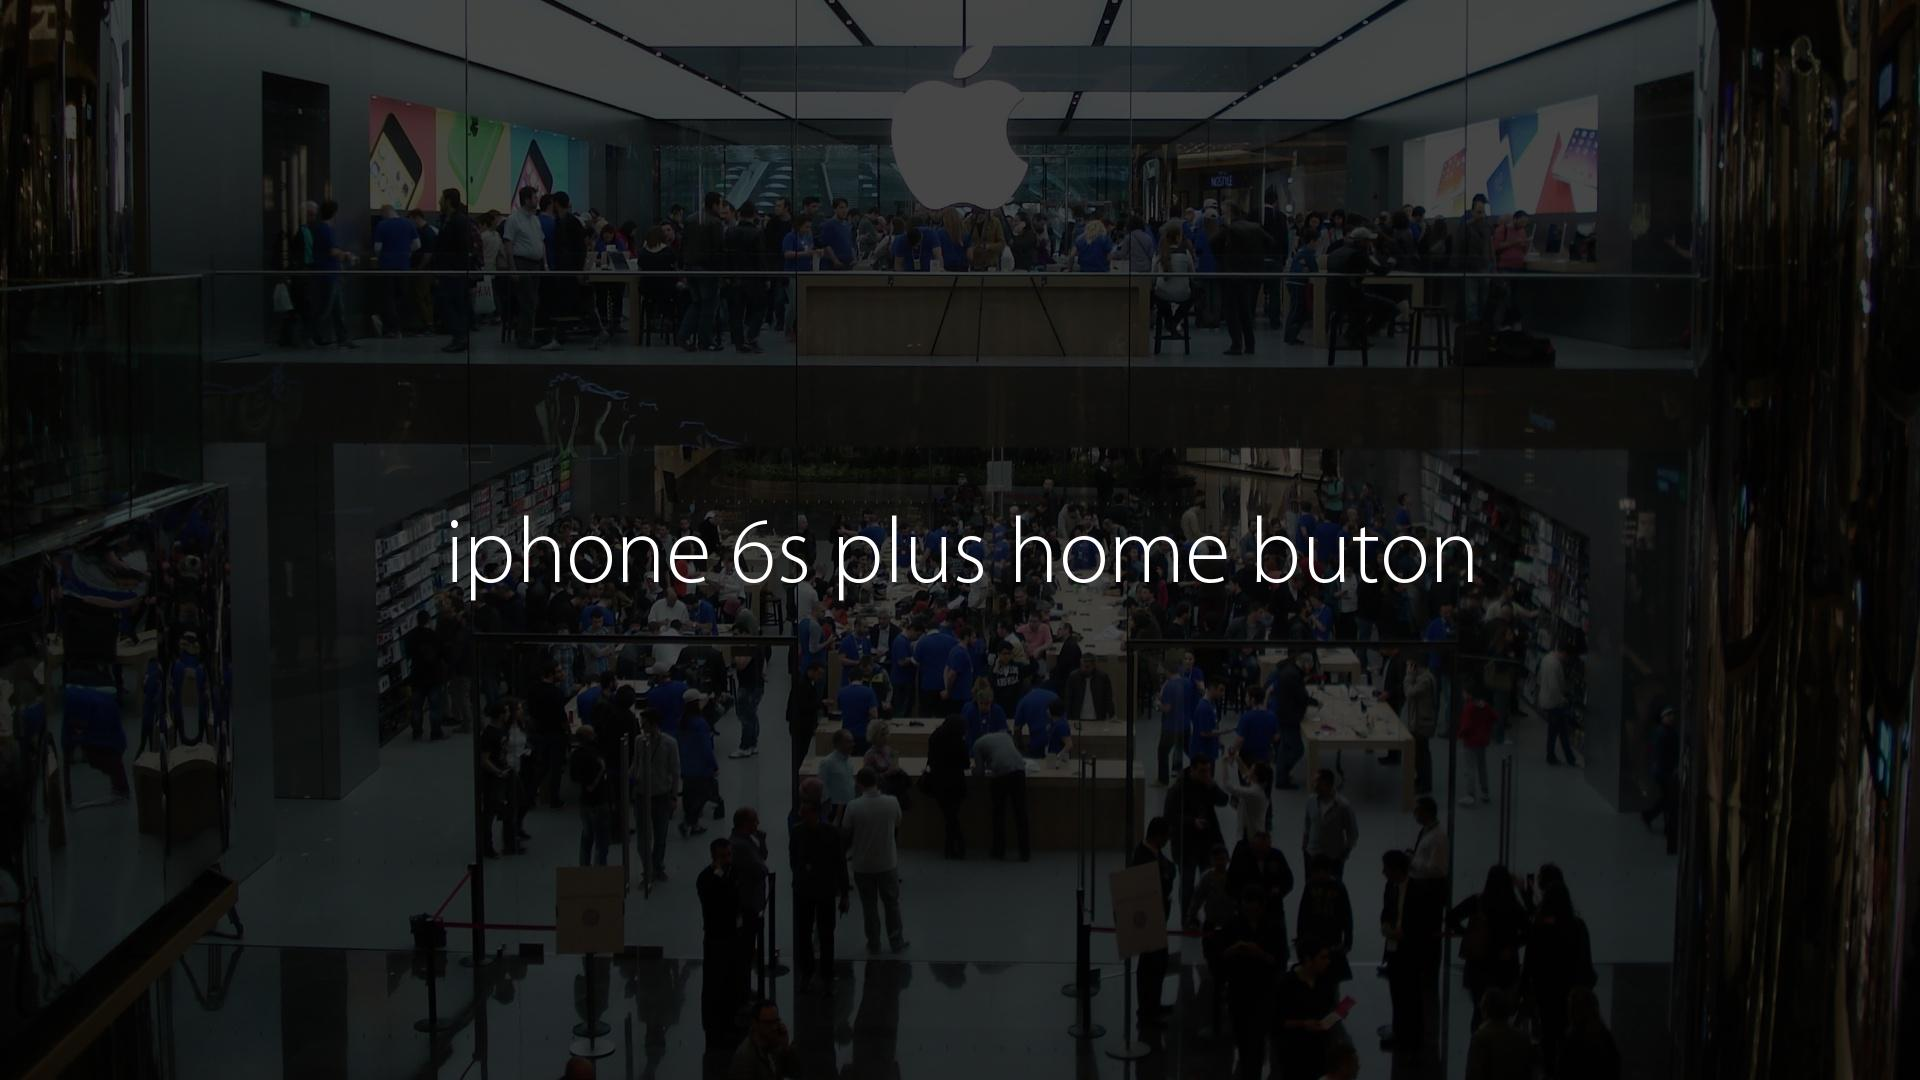 iphone 6s plus home buton